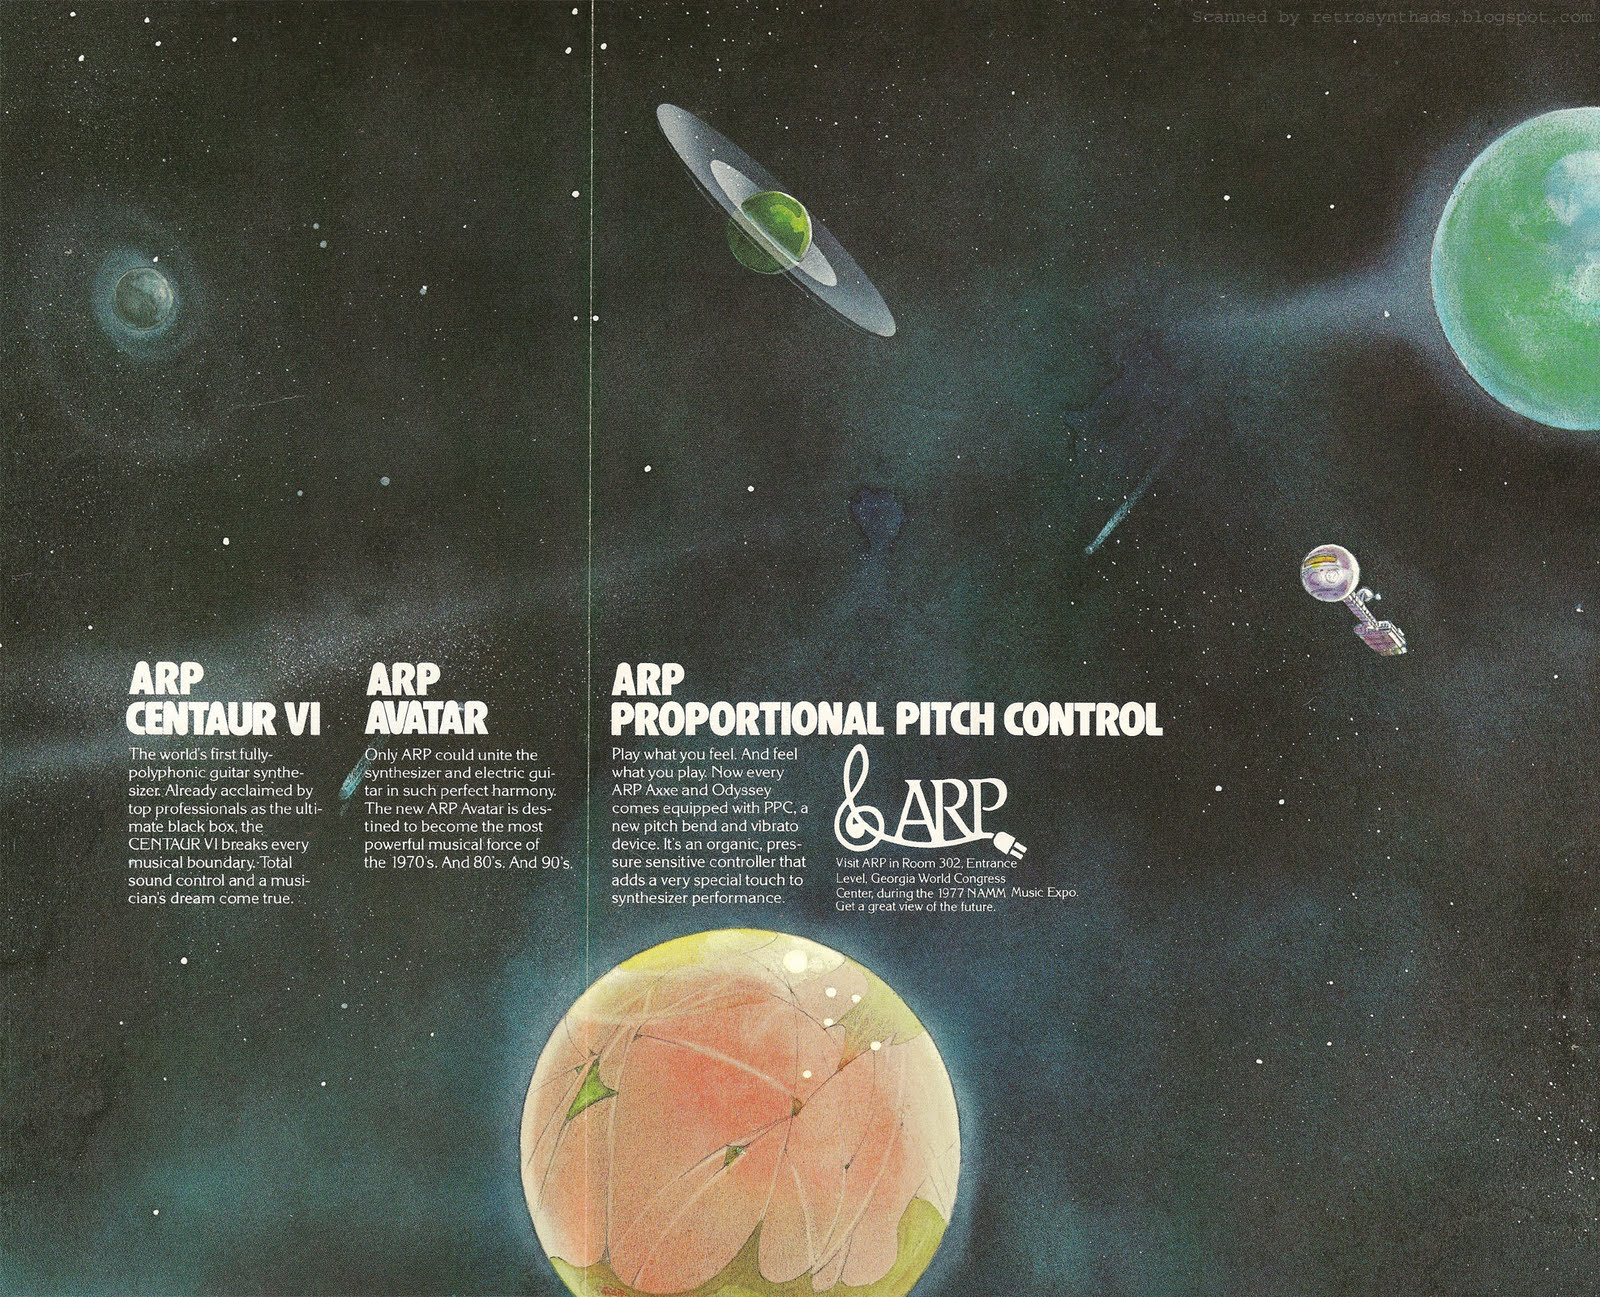 Retro Synth Ads: ARP Centaur VI, Avatar, and Proportional